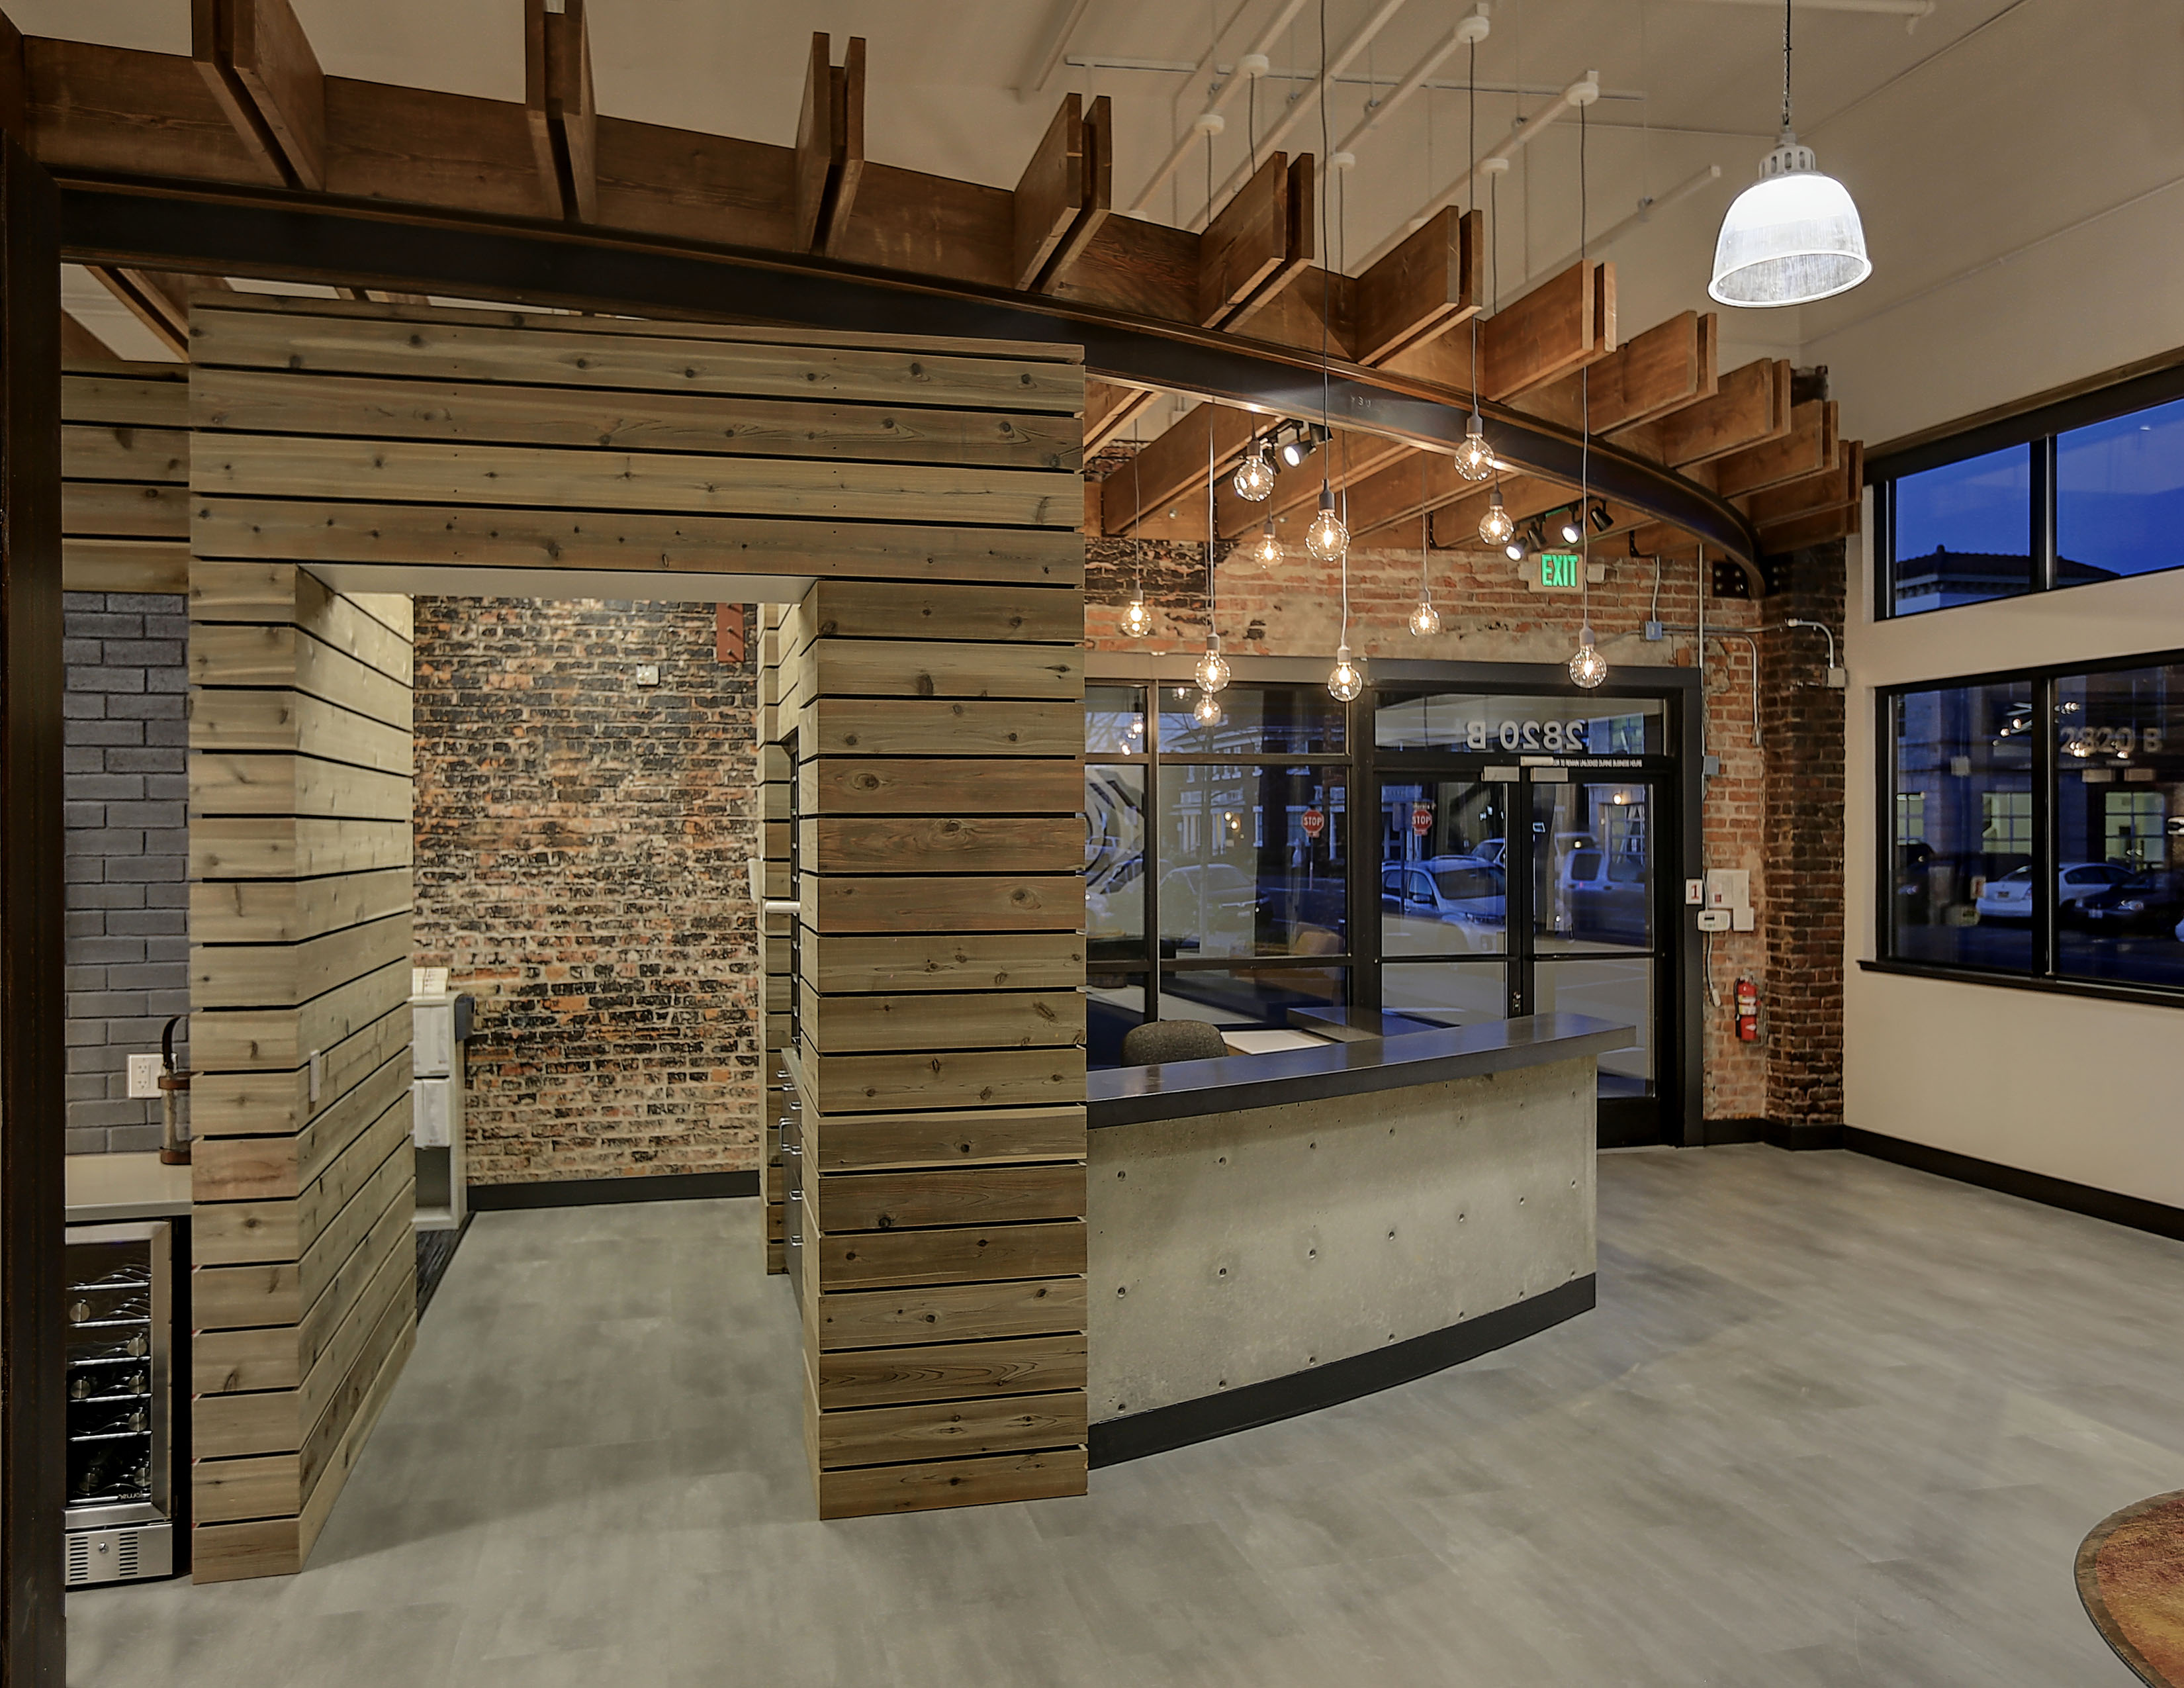 Kirtley cole construction adaptive reuse architect for Architects nw